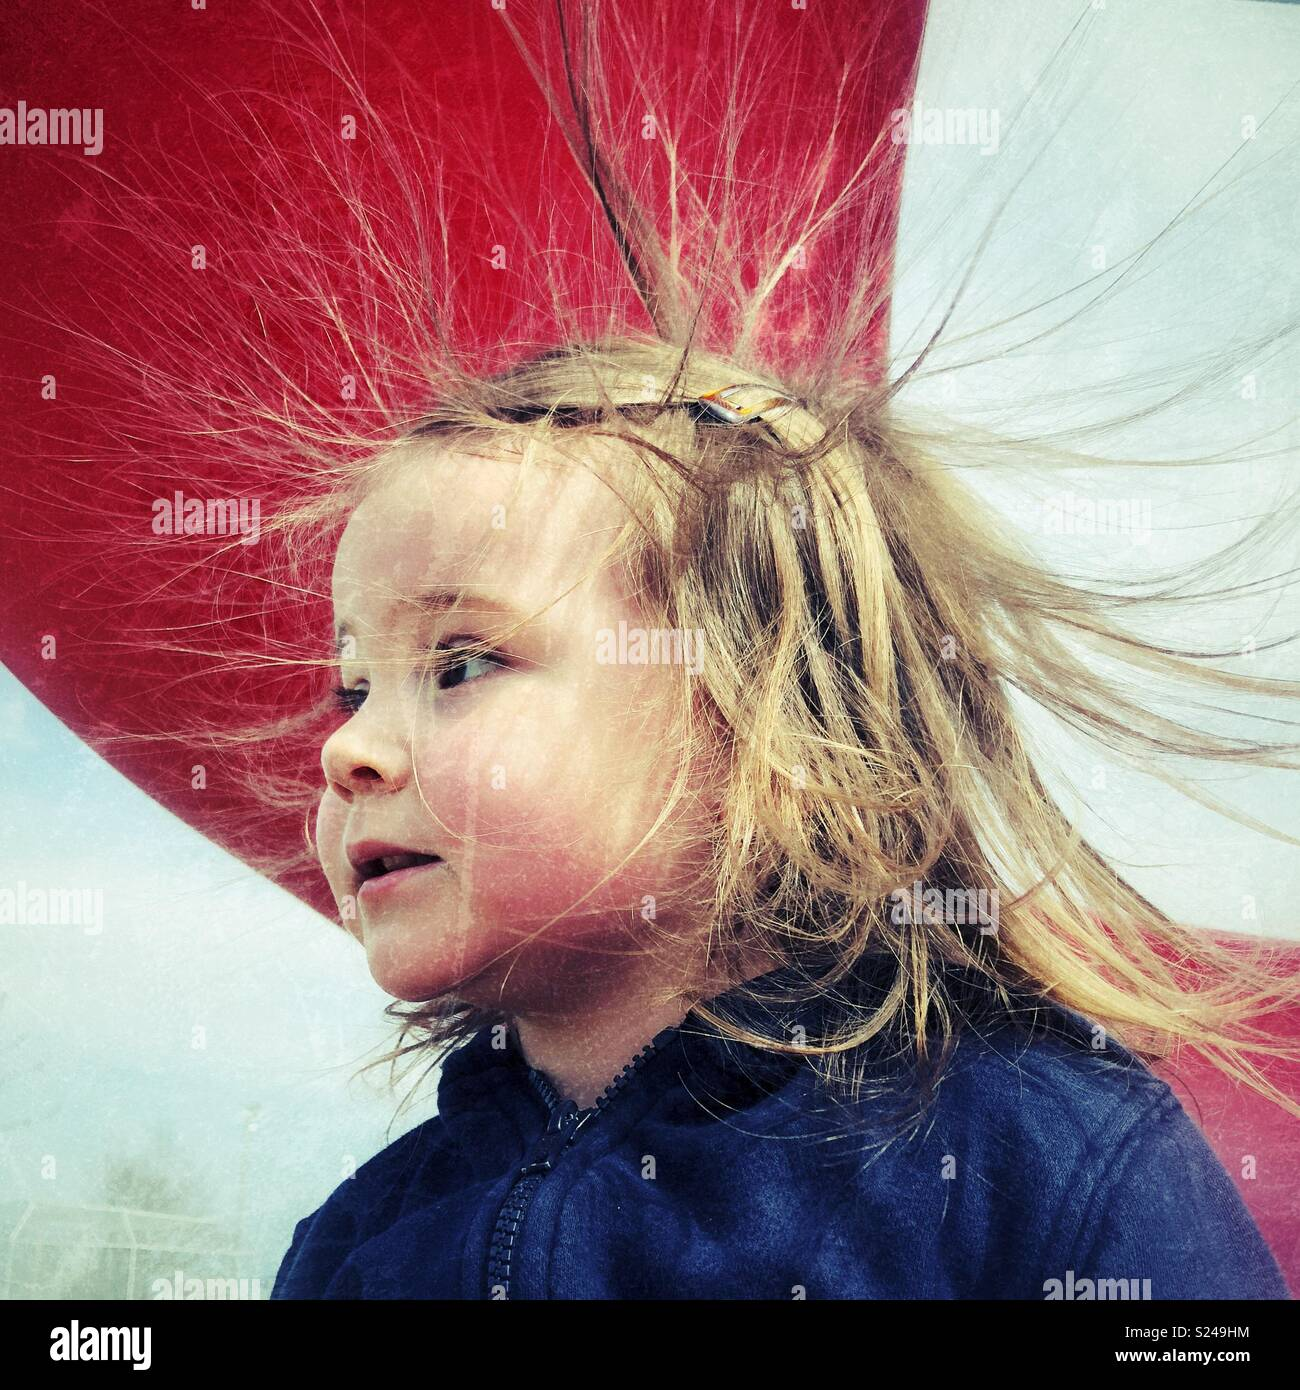 Young toddler girl portrait with static electricity from playground slide causing hair sticking stick straight up - Stock Image